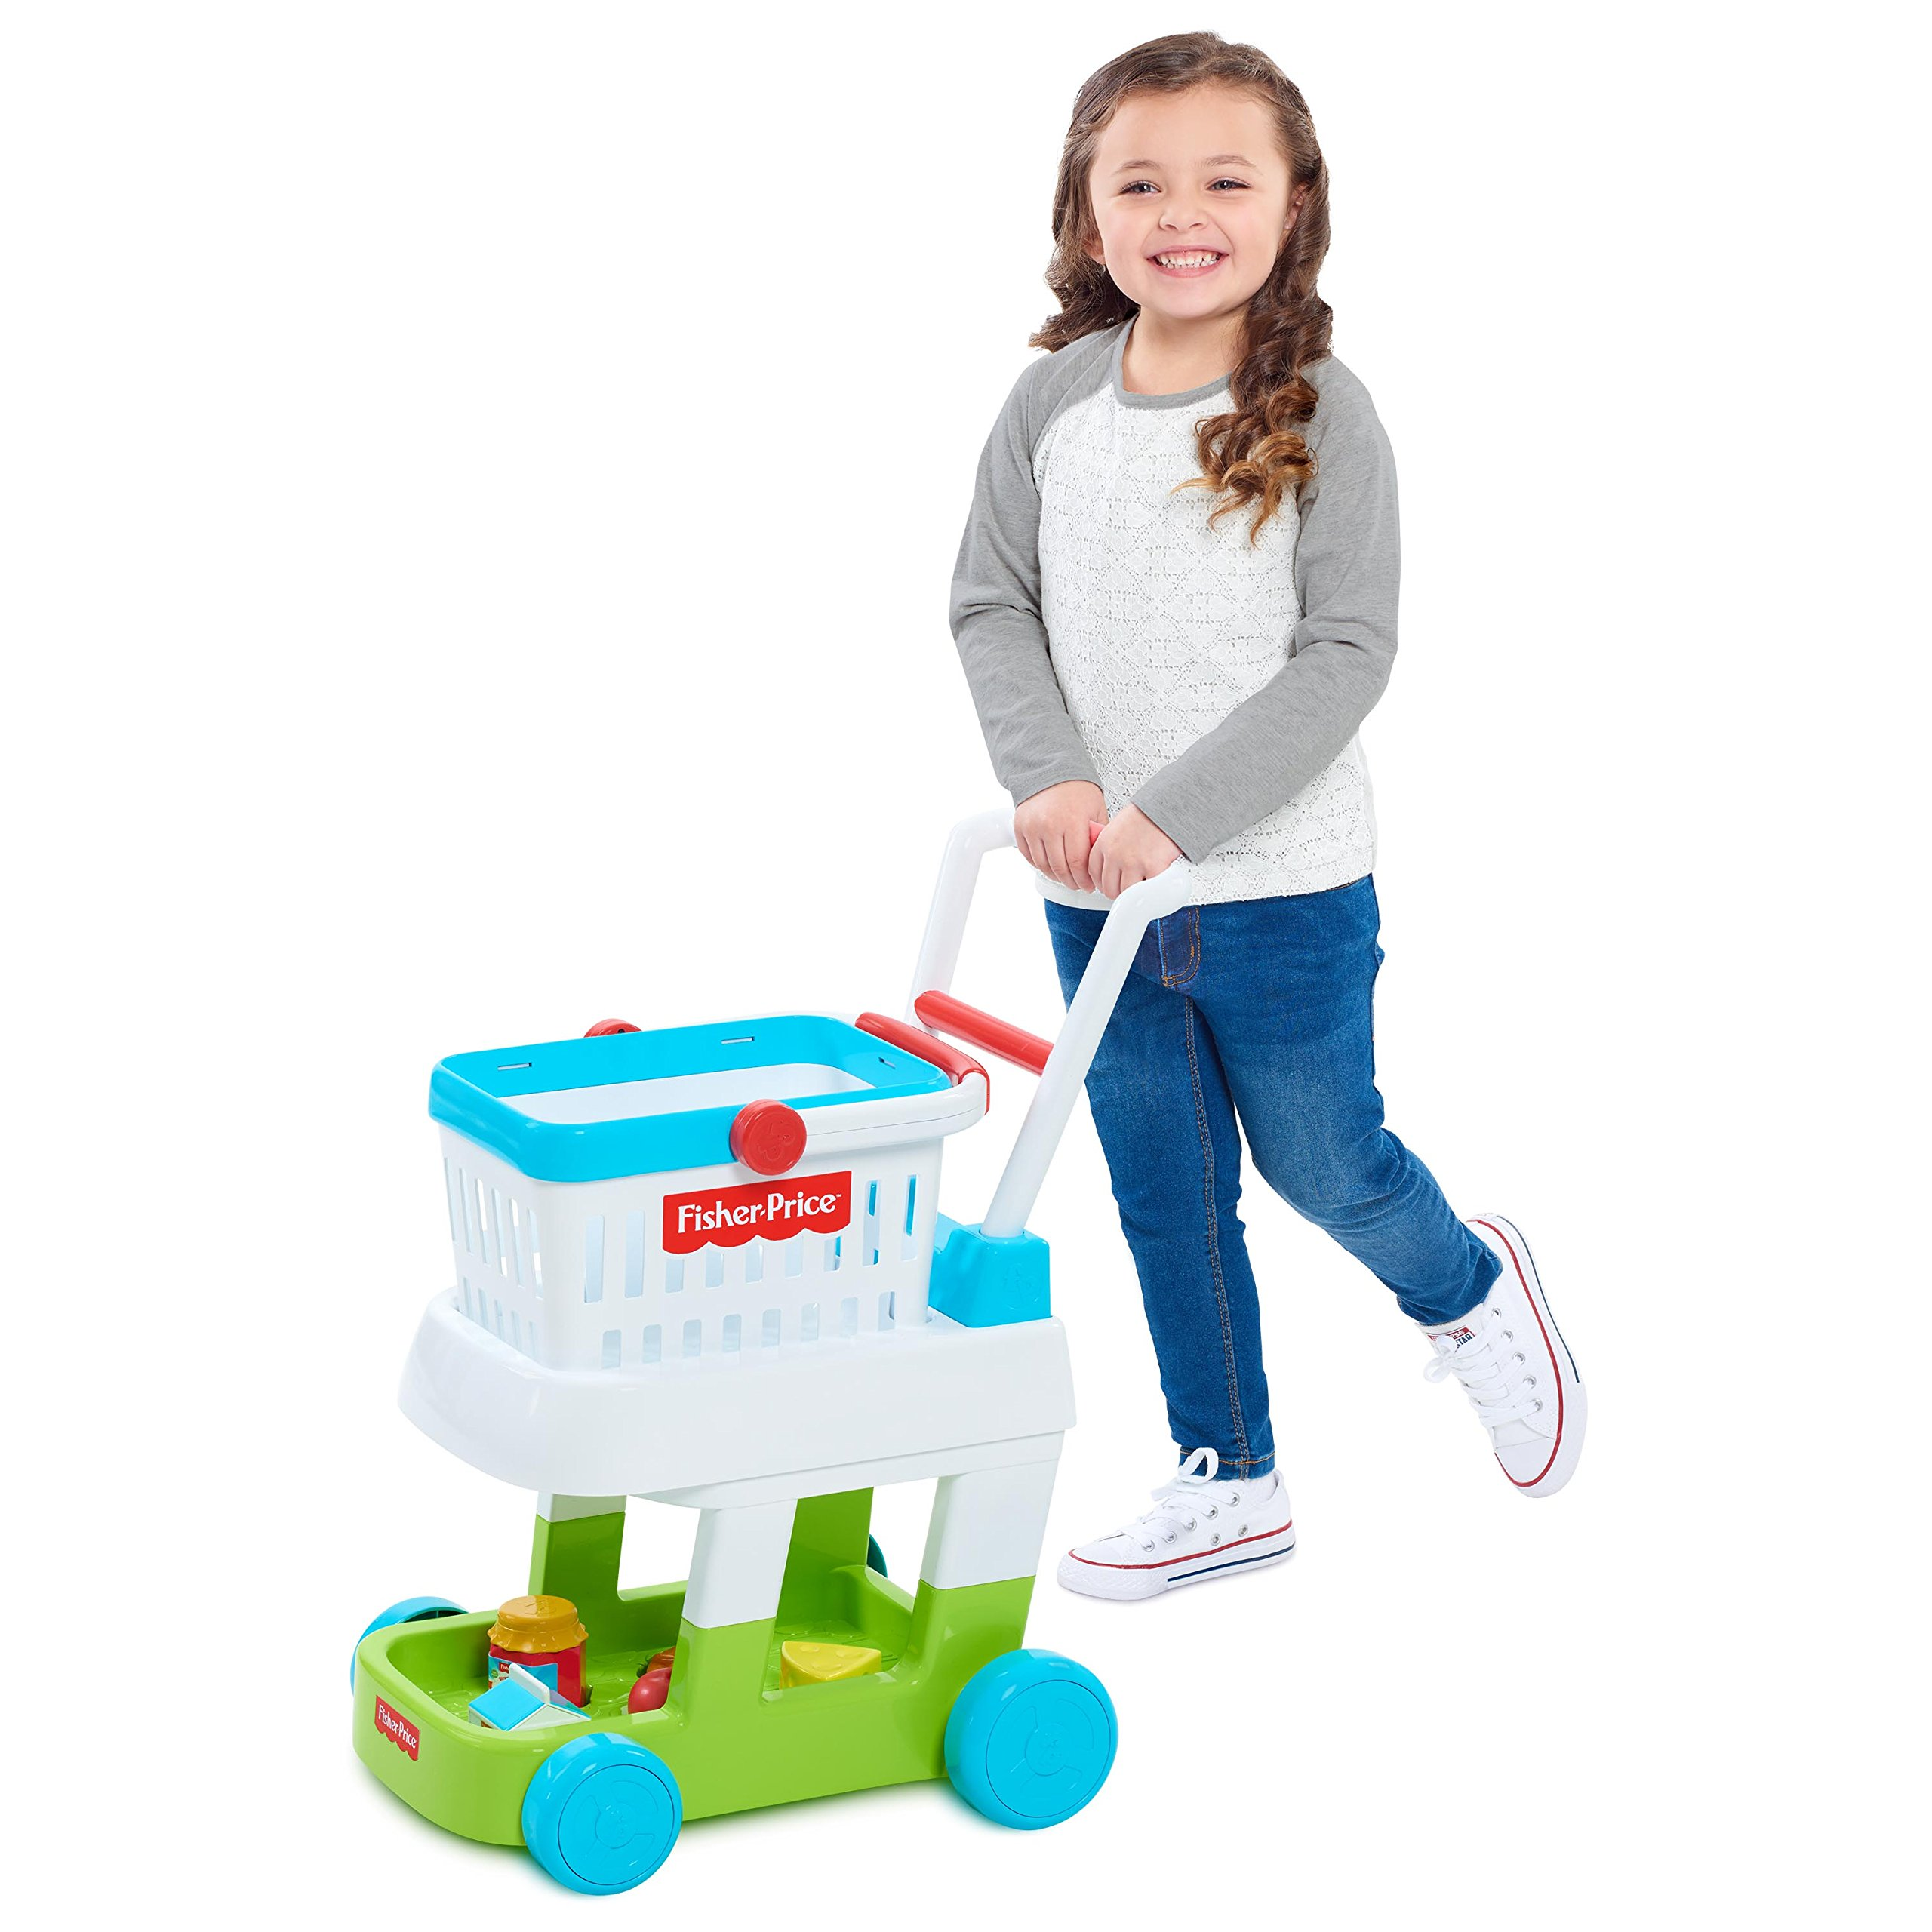 Fisher-Price 93525 Shopping Cart Toys, Multicolor by Fisher-Price (Image #2)